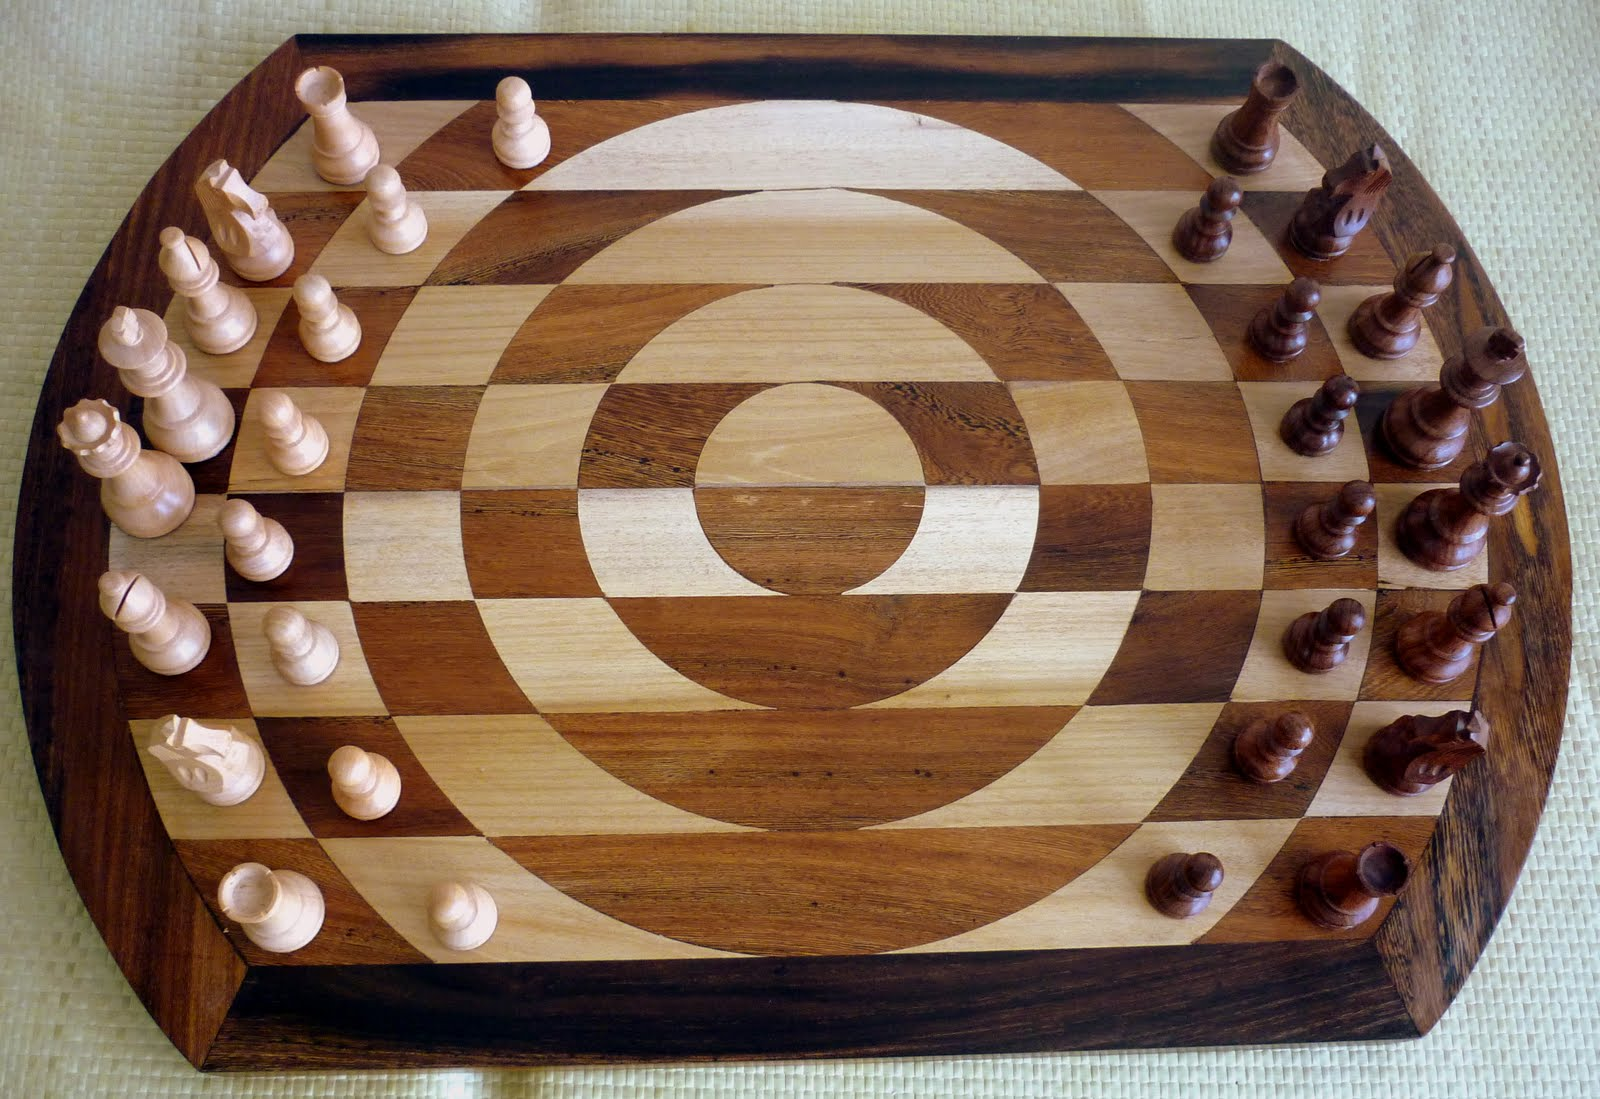 Chess Board Standards Chess Board Set Up Diagram